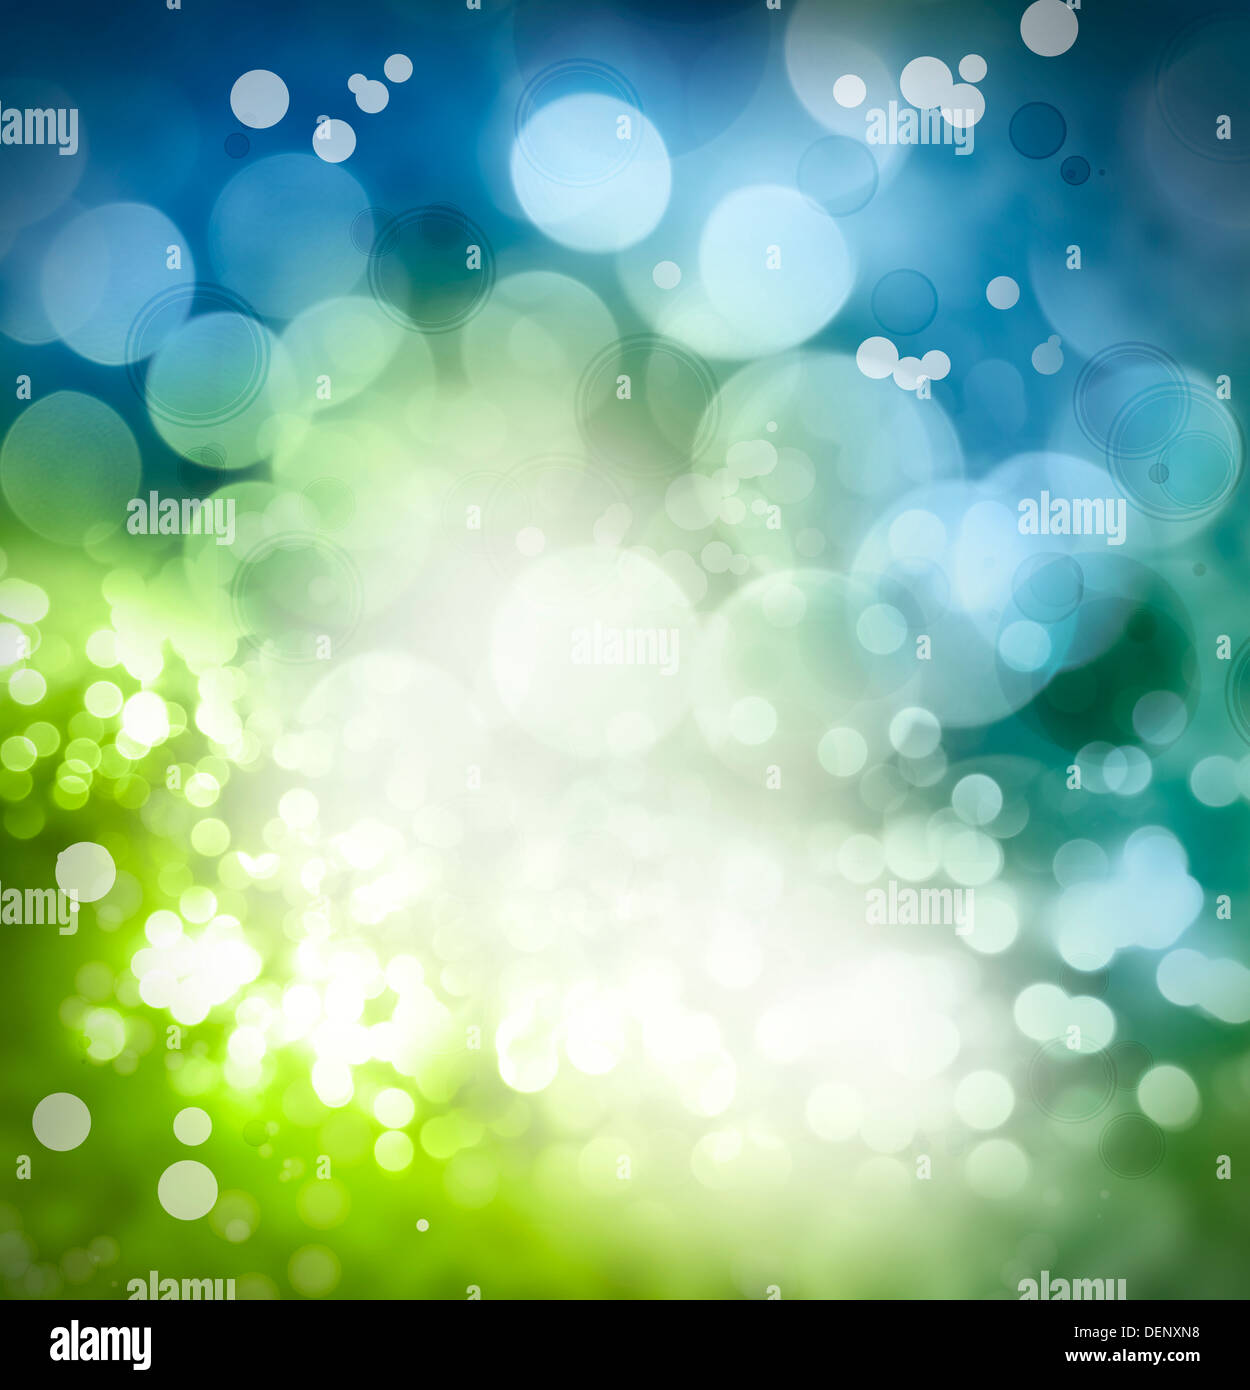 Bright Circles Of Light Abstract Color Background